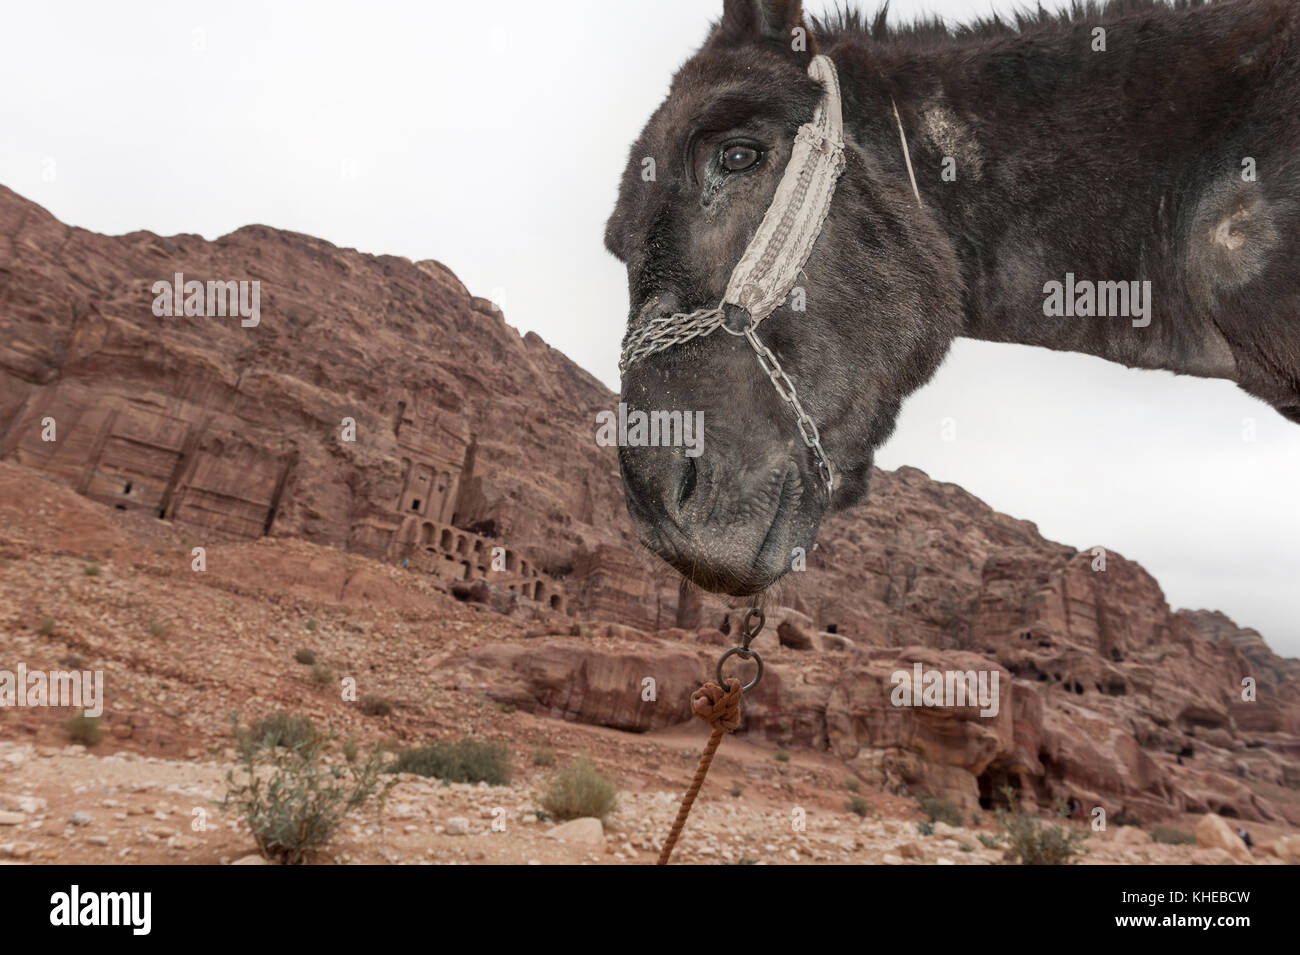 Animal welfare issue at Petra, Jordan, Middle East - Stock Image